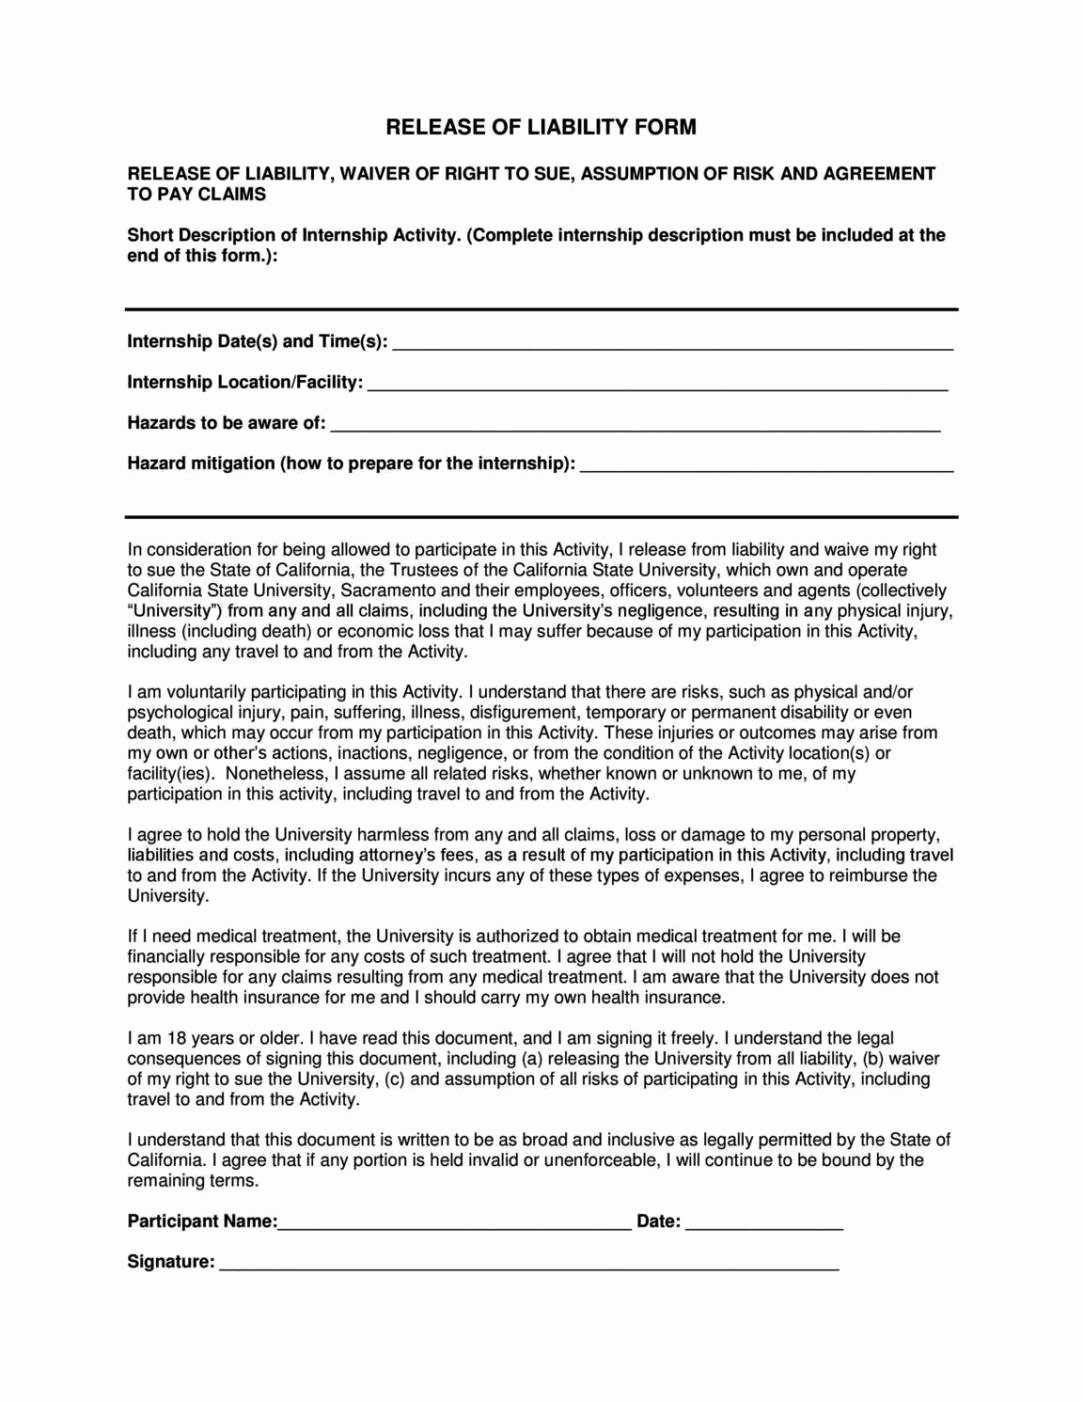 Liability Release form Template New General Liability Release form Template Sampletemplatess